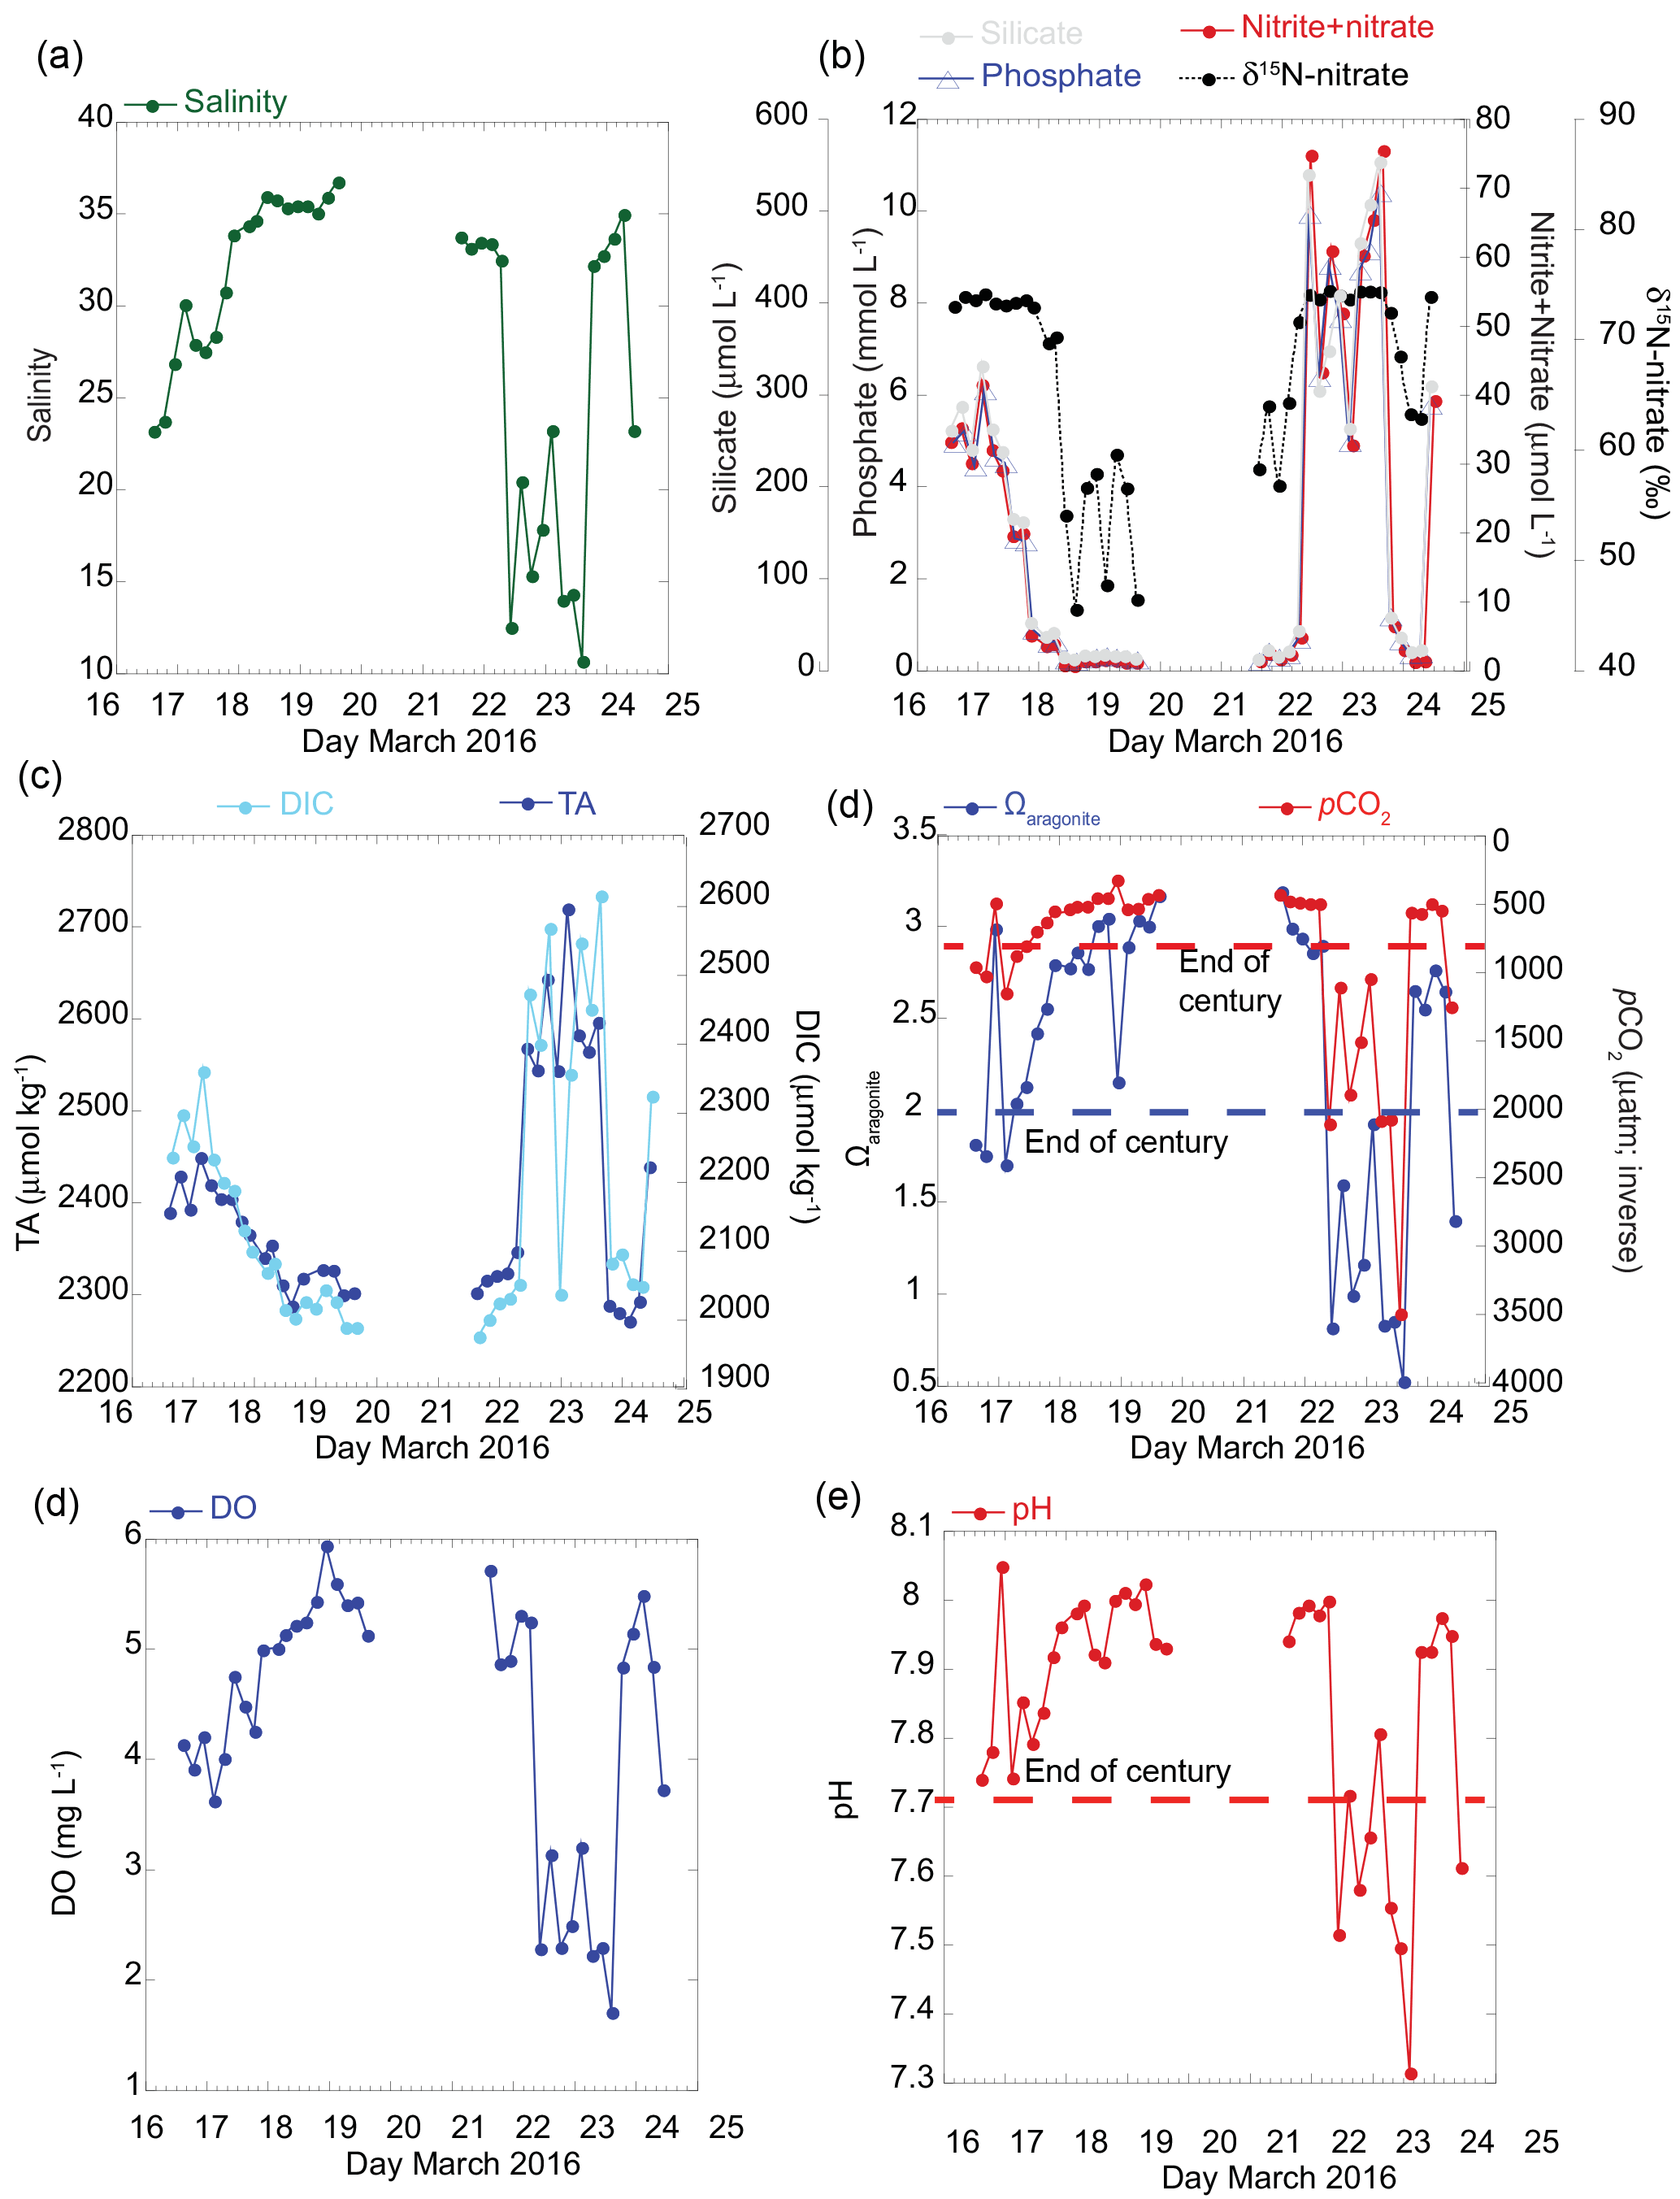 BG - Carbonate system parameters of an algal-dominated reef